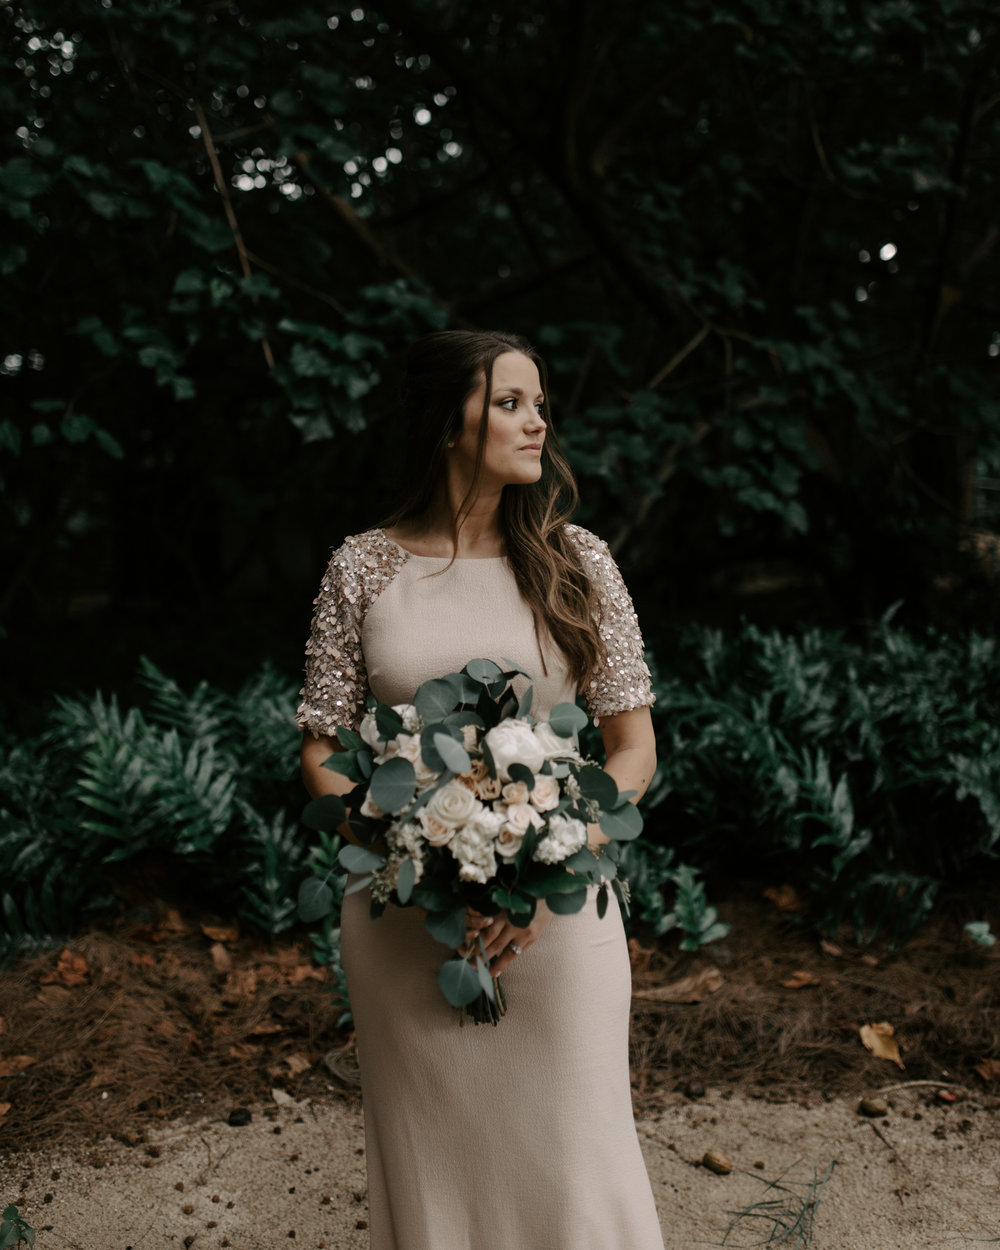 Blush Wedding Dress Bridal Portrait | Kualoa Ranch Secret Island Elopement by Hawaii Wedding Photographer Desiree Leilani